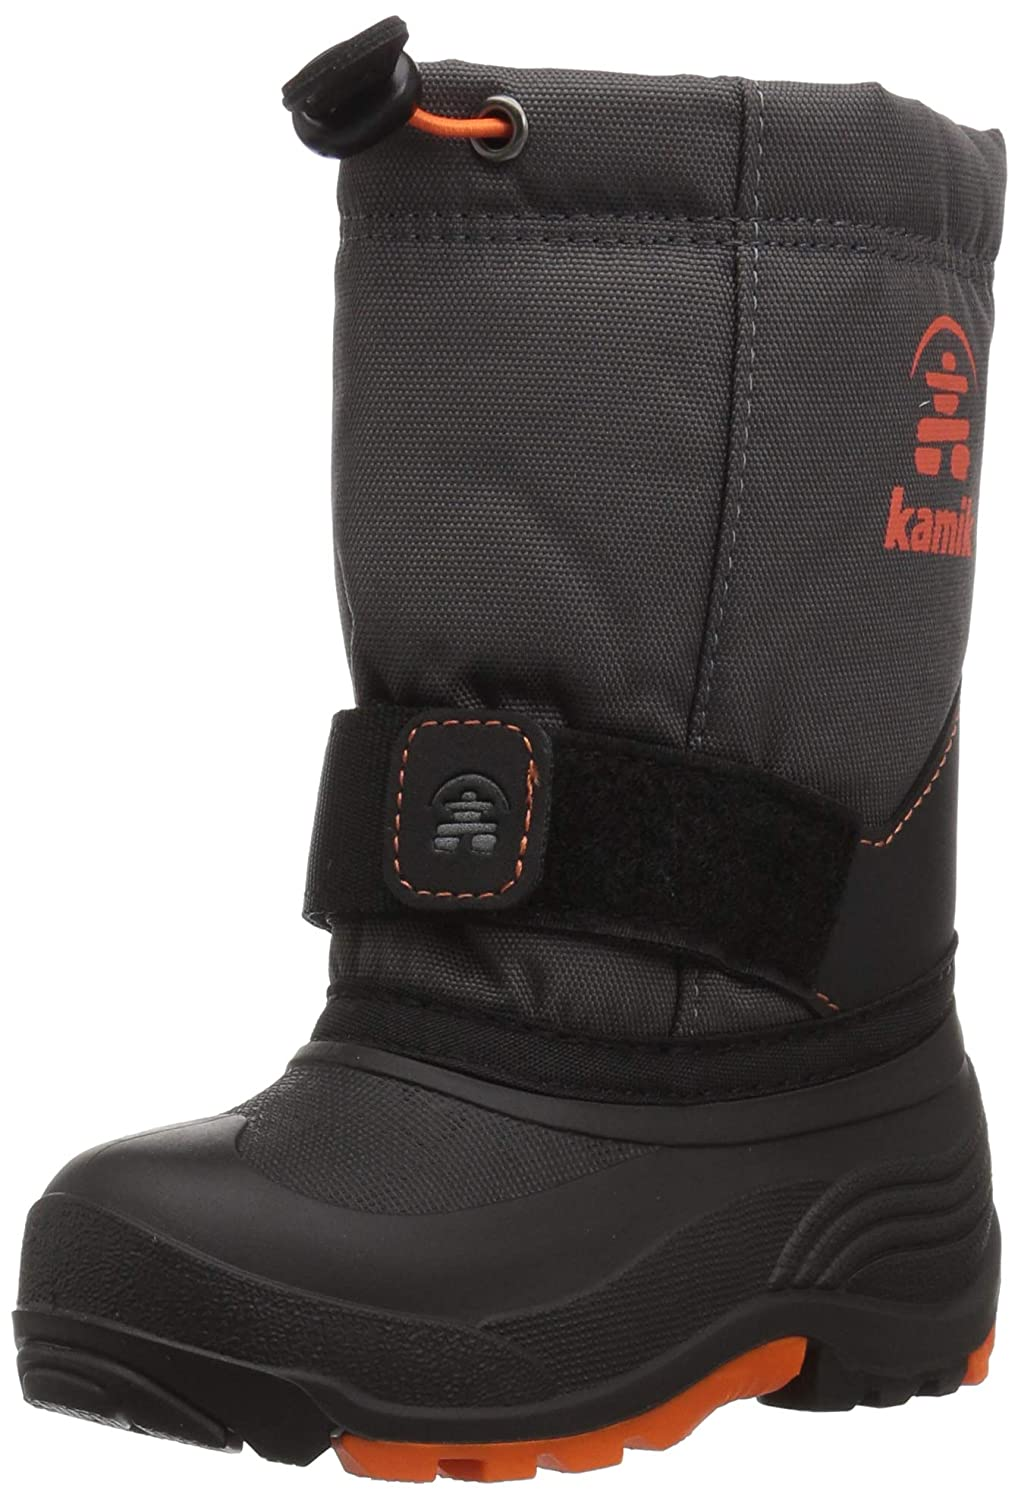 Kamik Kids' Rocketw Snow Boot